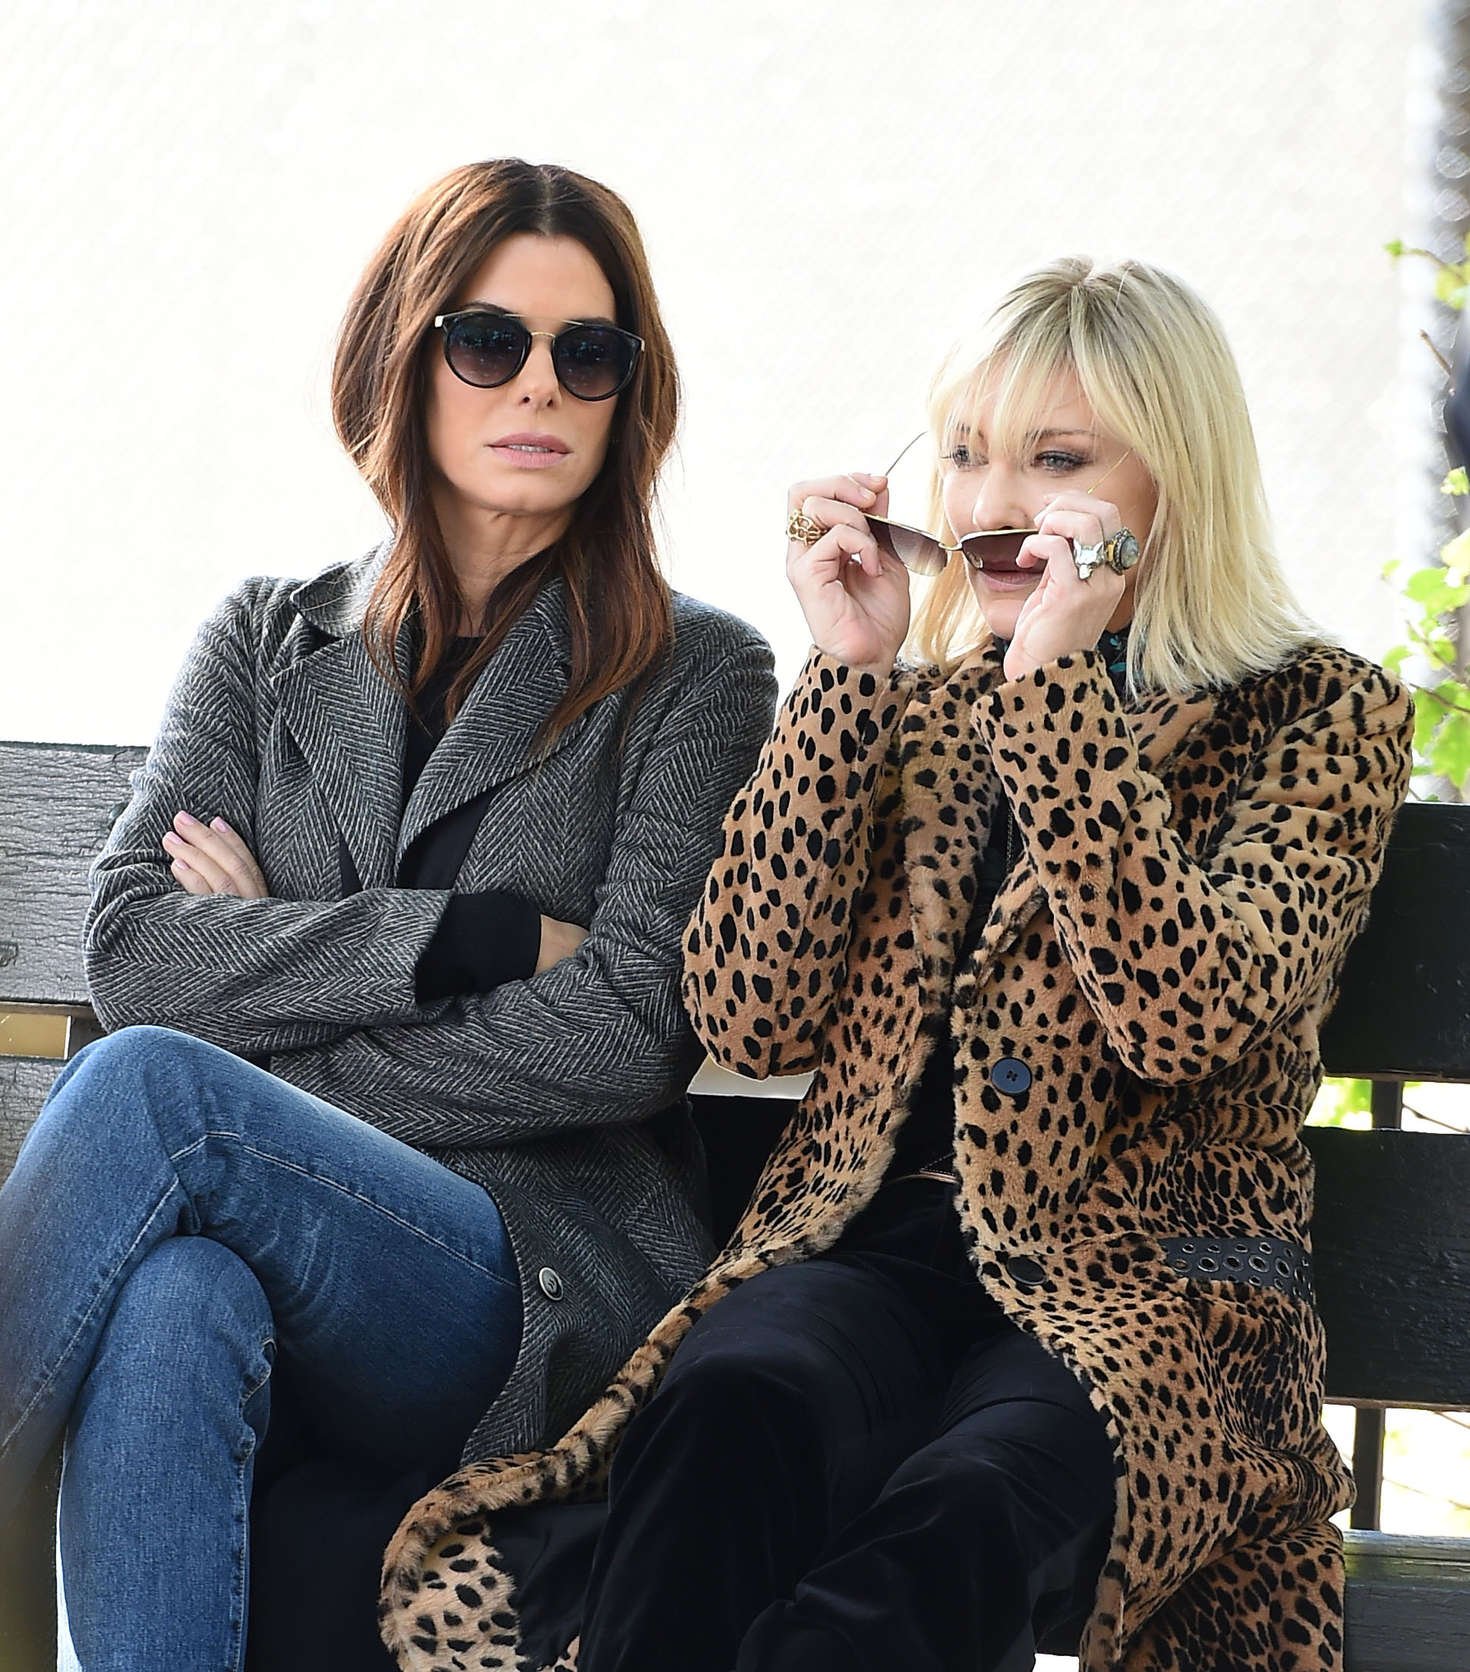 Sandra Bullock and Cate Blanchett filming 'Ocean's 8' in NYC